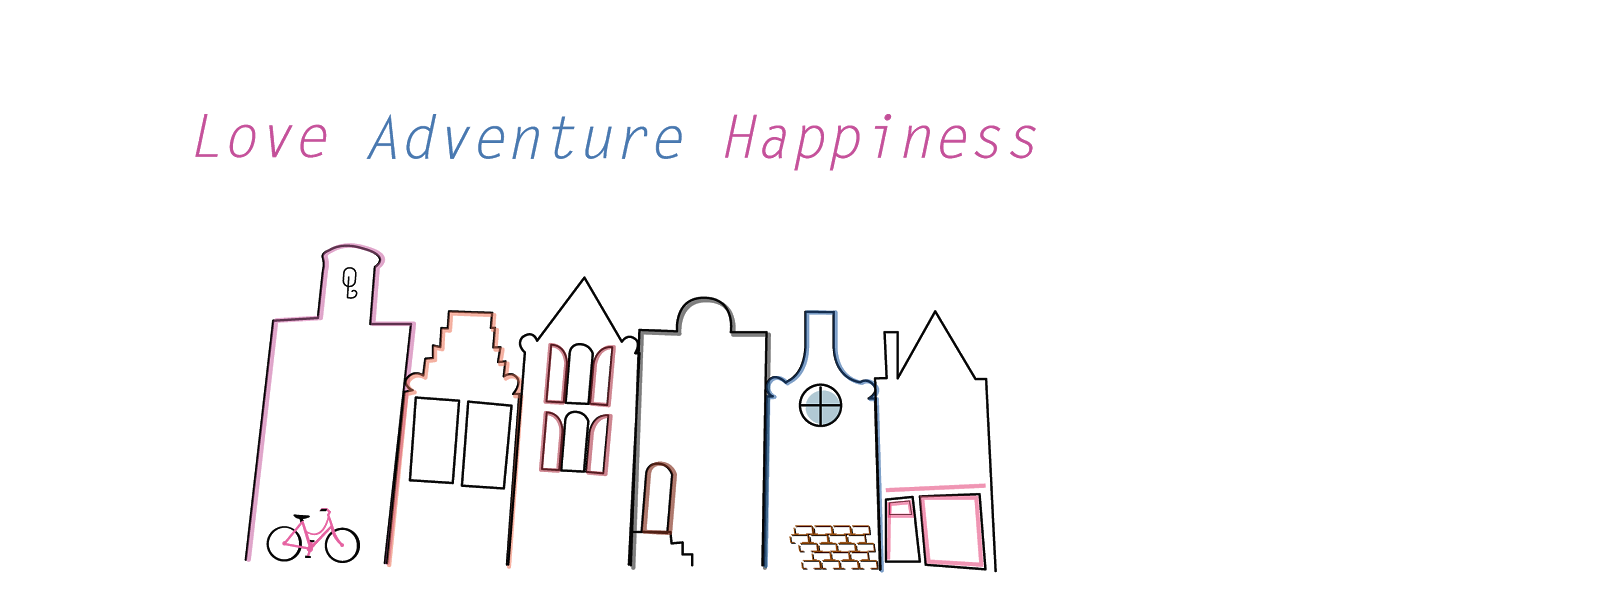 Love Adventure Happiness